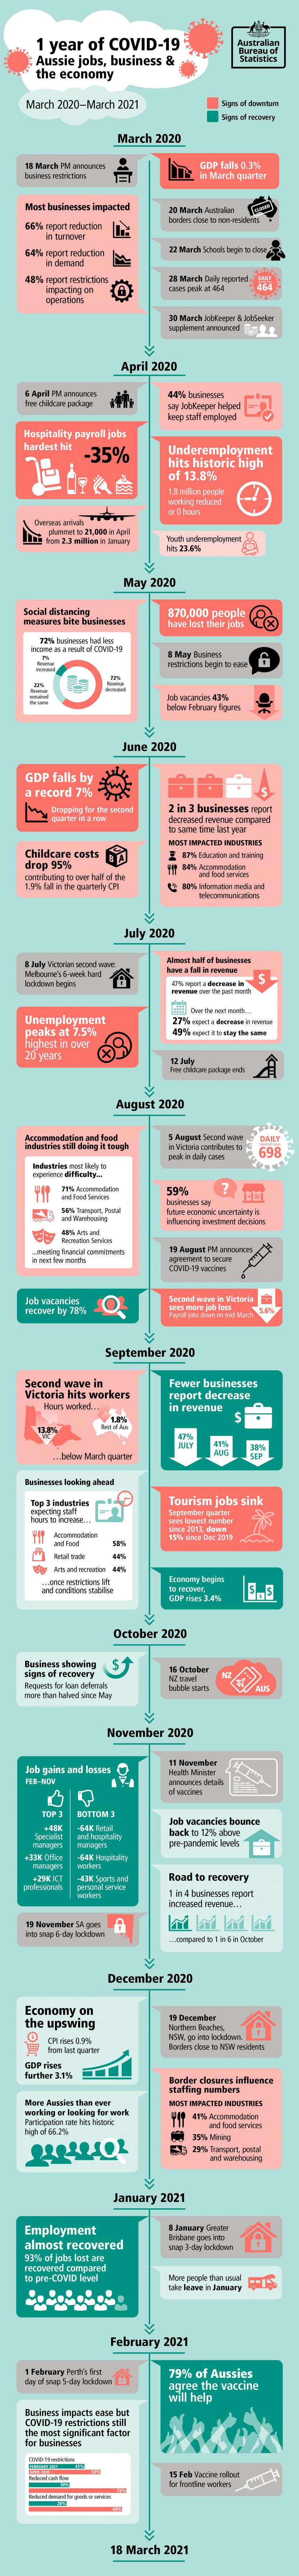 Heading: One year of COVID-19 - Aussie jobs, business and the economy Timeline from March 2020 to March 2021 Subheading: March 2020 18 March, Prime Minister announces business restrictions. GDP falls 0.3% in March quarter. Source: Australian National Accounts: National Income, Expenditure and Product. 20 March, Australian borders close to non-residents. 22 March, School begin to close. 28 March, Daily reported cases peak at 464. 30 March, JobKeeper and JobSeeker supplement announced. Most businesses im